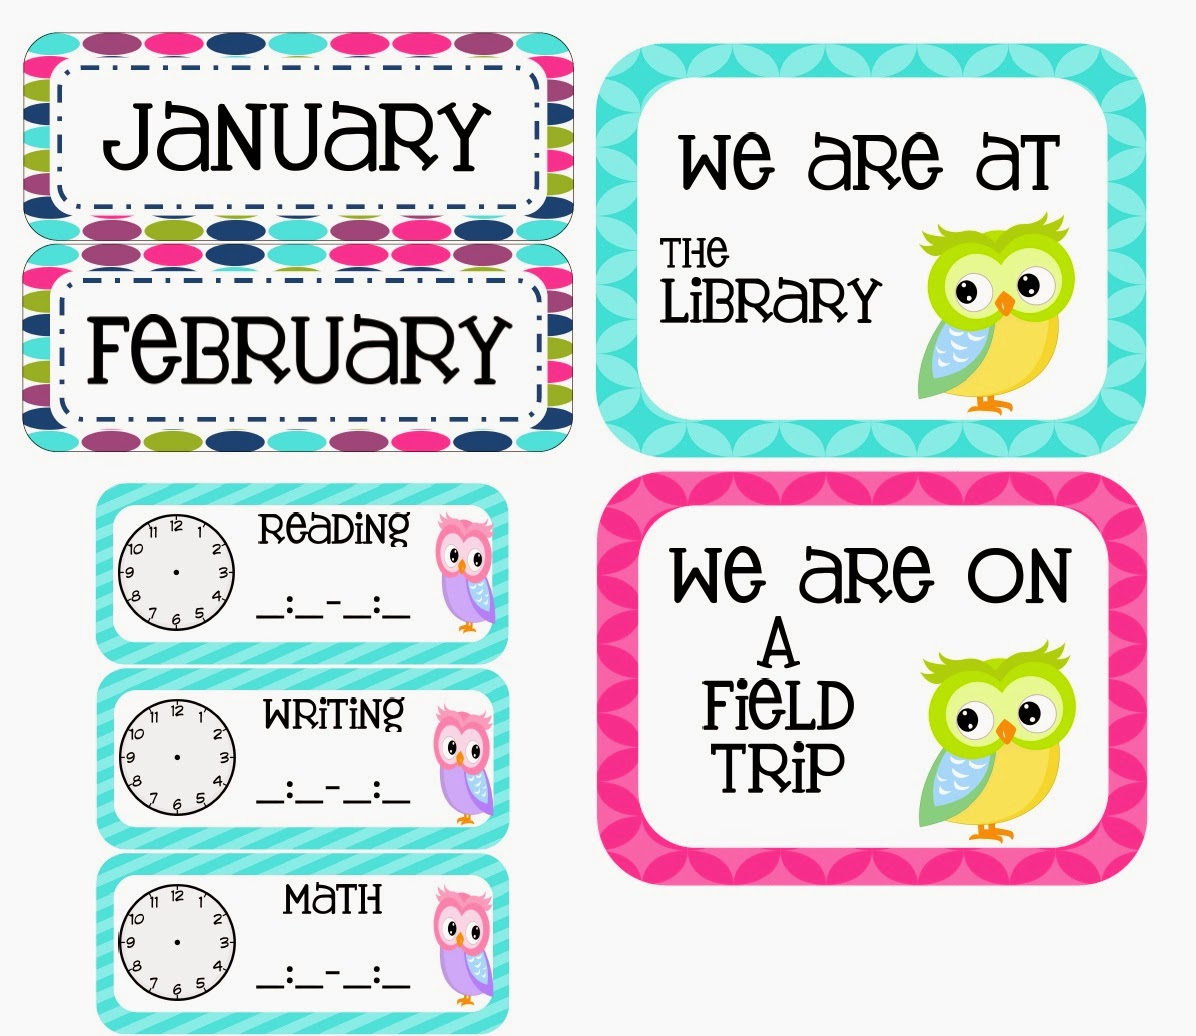 http://www.teacherspayteachers.com/Product/Owl-Themed-Classroom-Set-763462